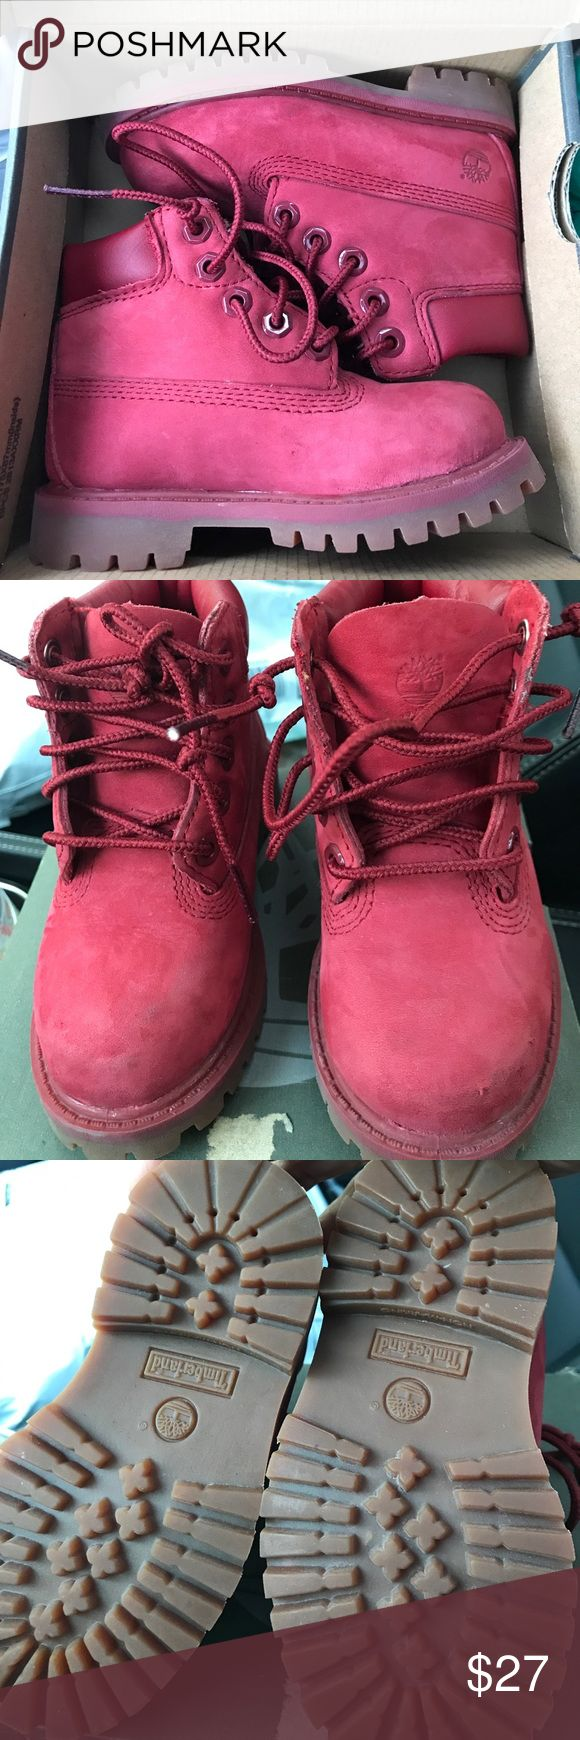 Timberlands toddler boots Unisex timbs  size 7. Great for very cold snowy days. Little wear as shown in pics Timberland Shoes Boots